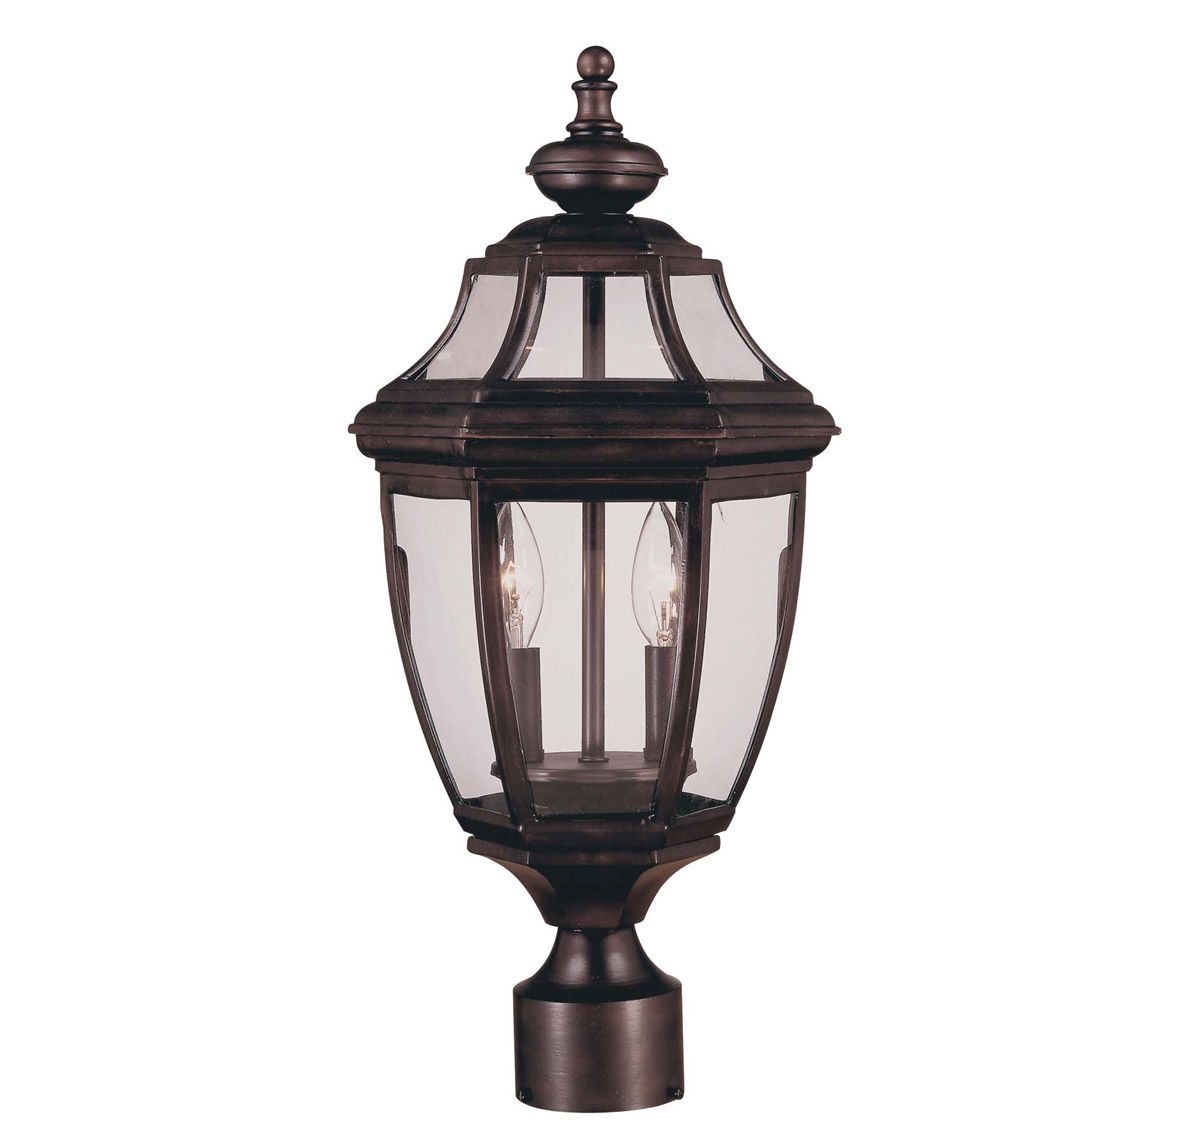 Endorado 2 Light Post Lantern With Images Outdoor Post Lights Lantern Post Outdoor Hanging Lanterns